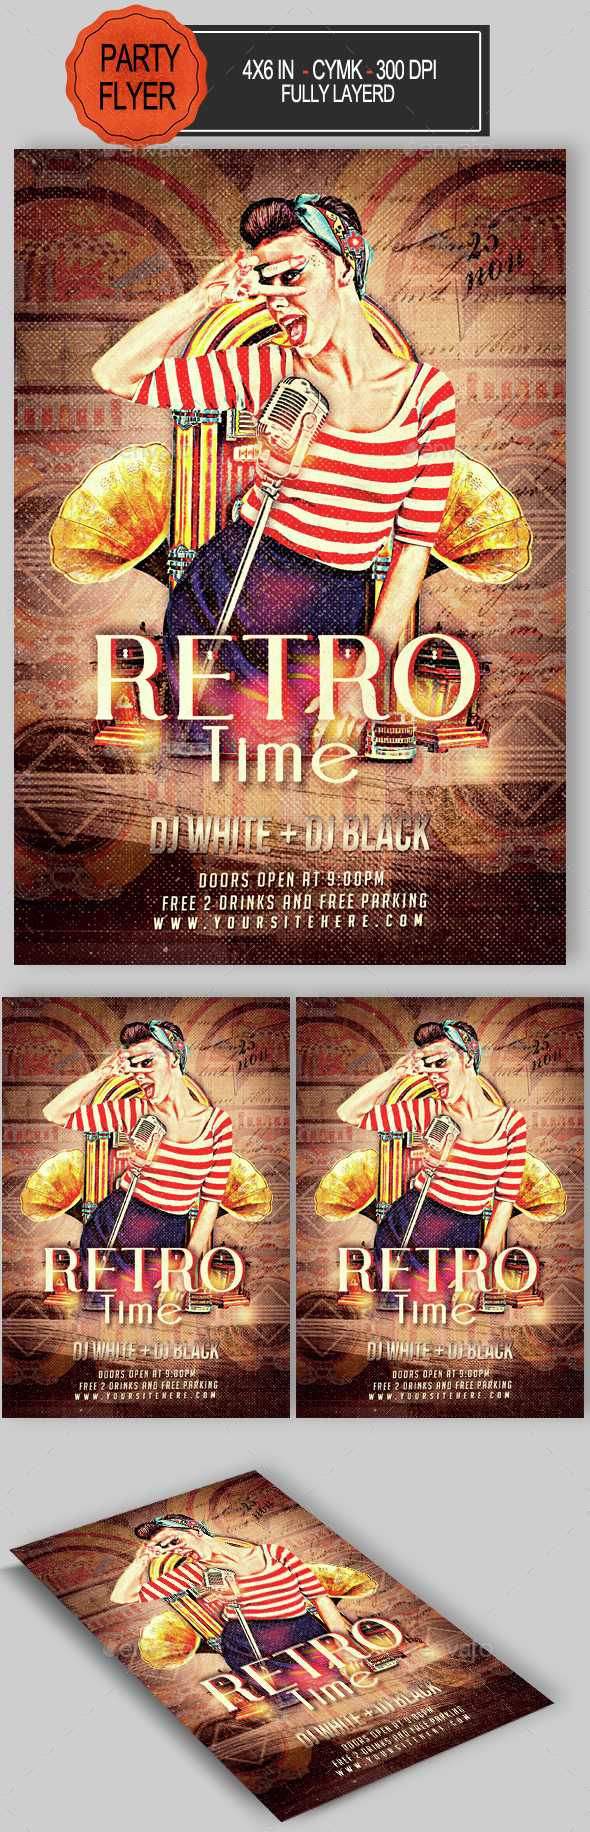 Retro Time Party Flyer - Clubs & Parties Events